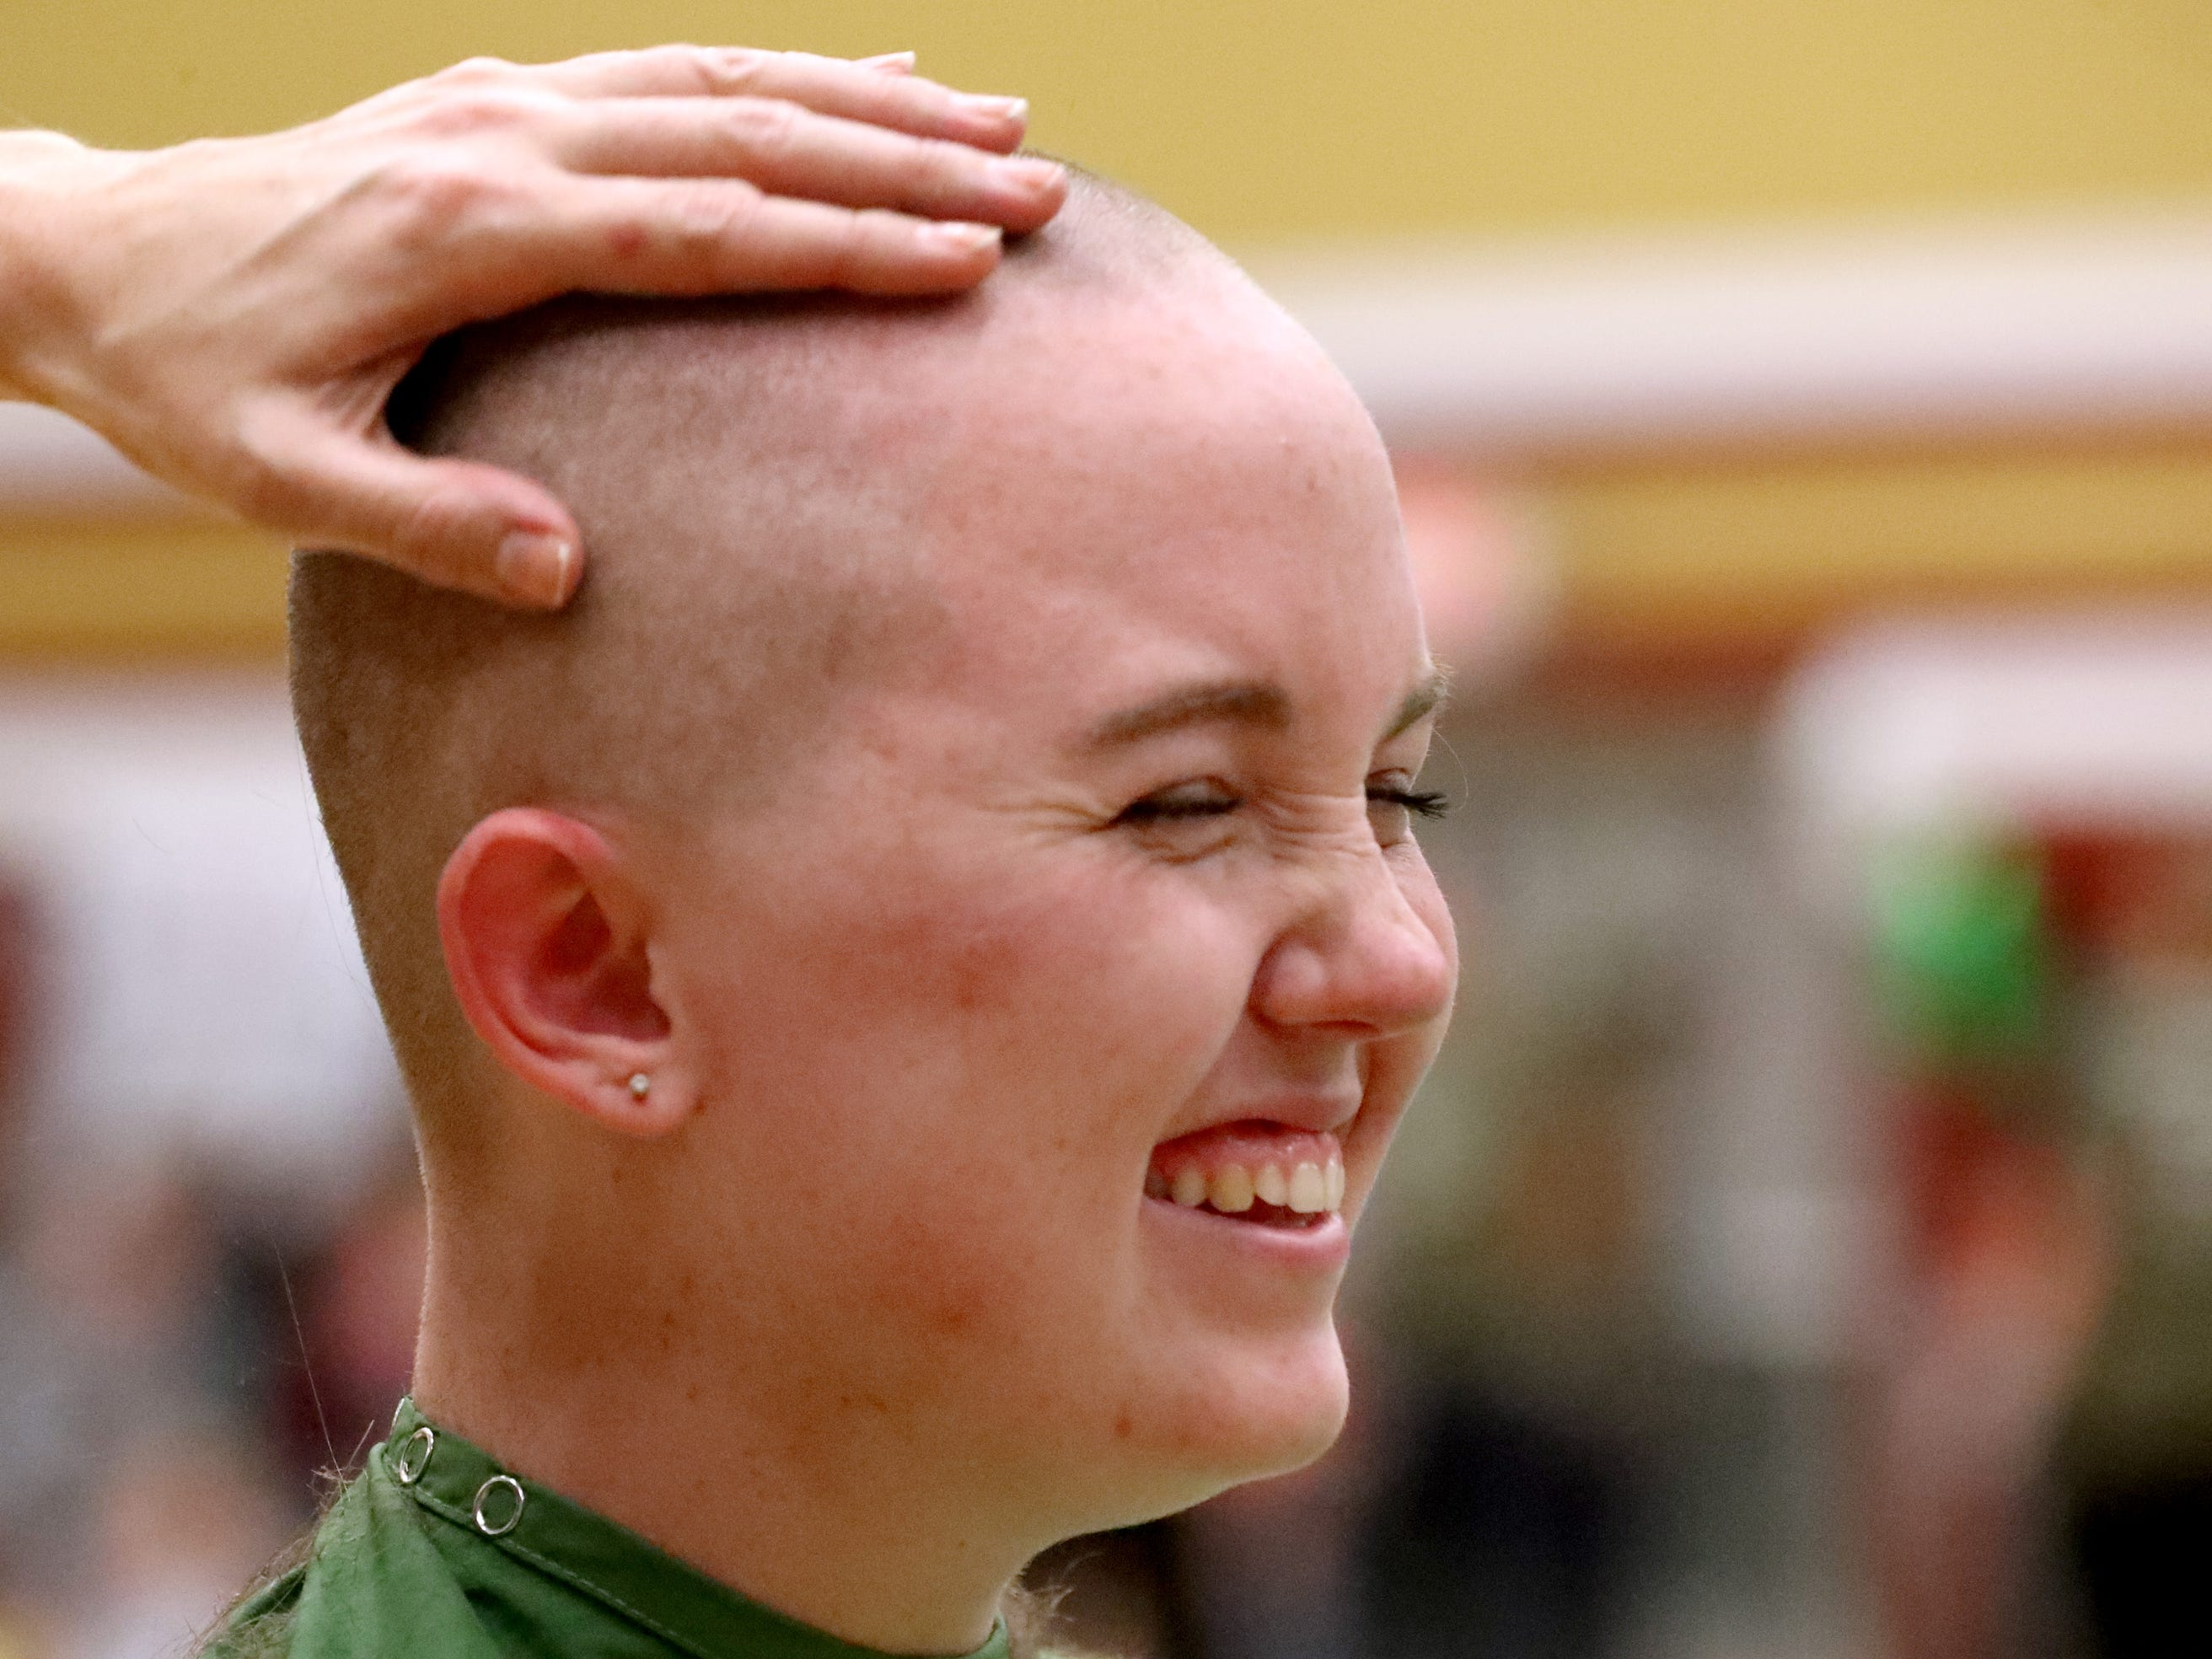 Riverdale senior Ainsley Fisher reacts as she gets her head shaved during Riverdale High School's sixth annual Brave the Shave fundraiser to benefit St. Baldrick's Foundation on Thursday, March 21, 2019. The organization raises funds and awareness for childhood cancer.